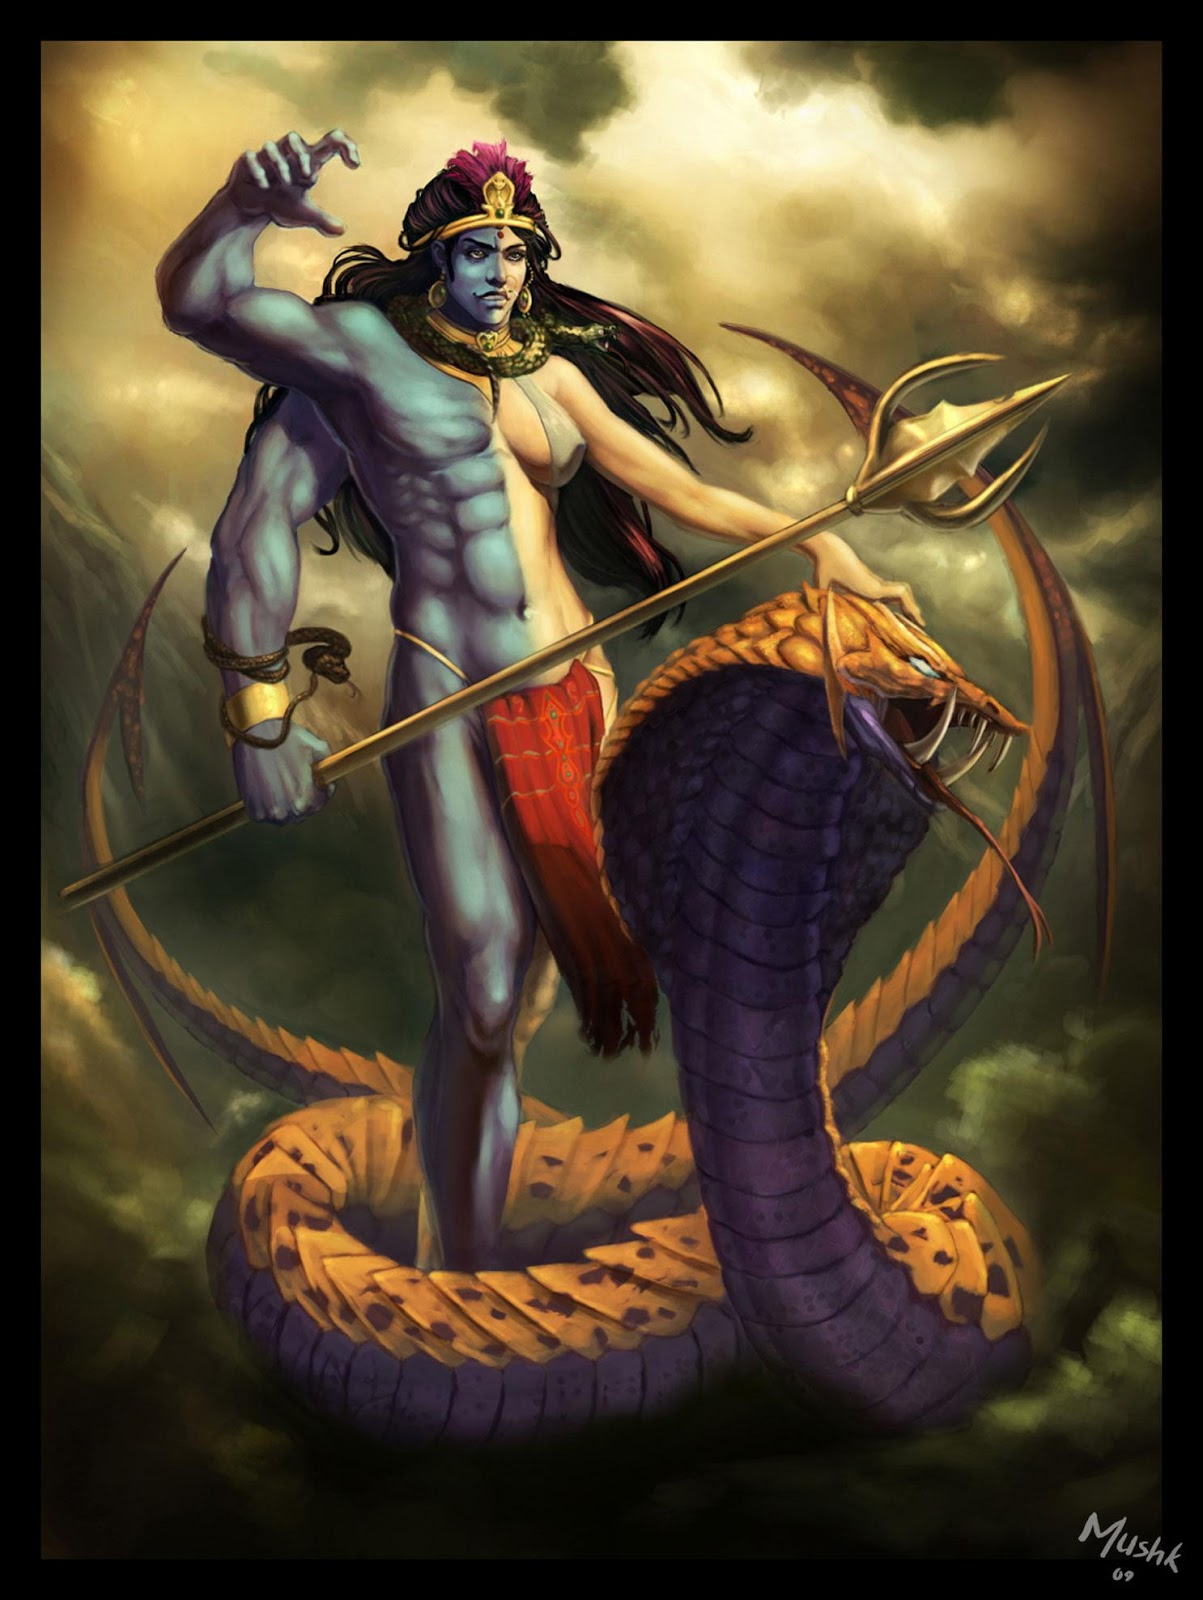 Lord Shiva Angry Galleries related: lord shiva